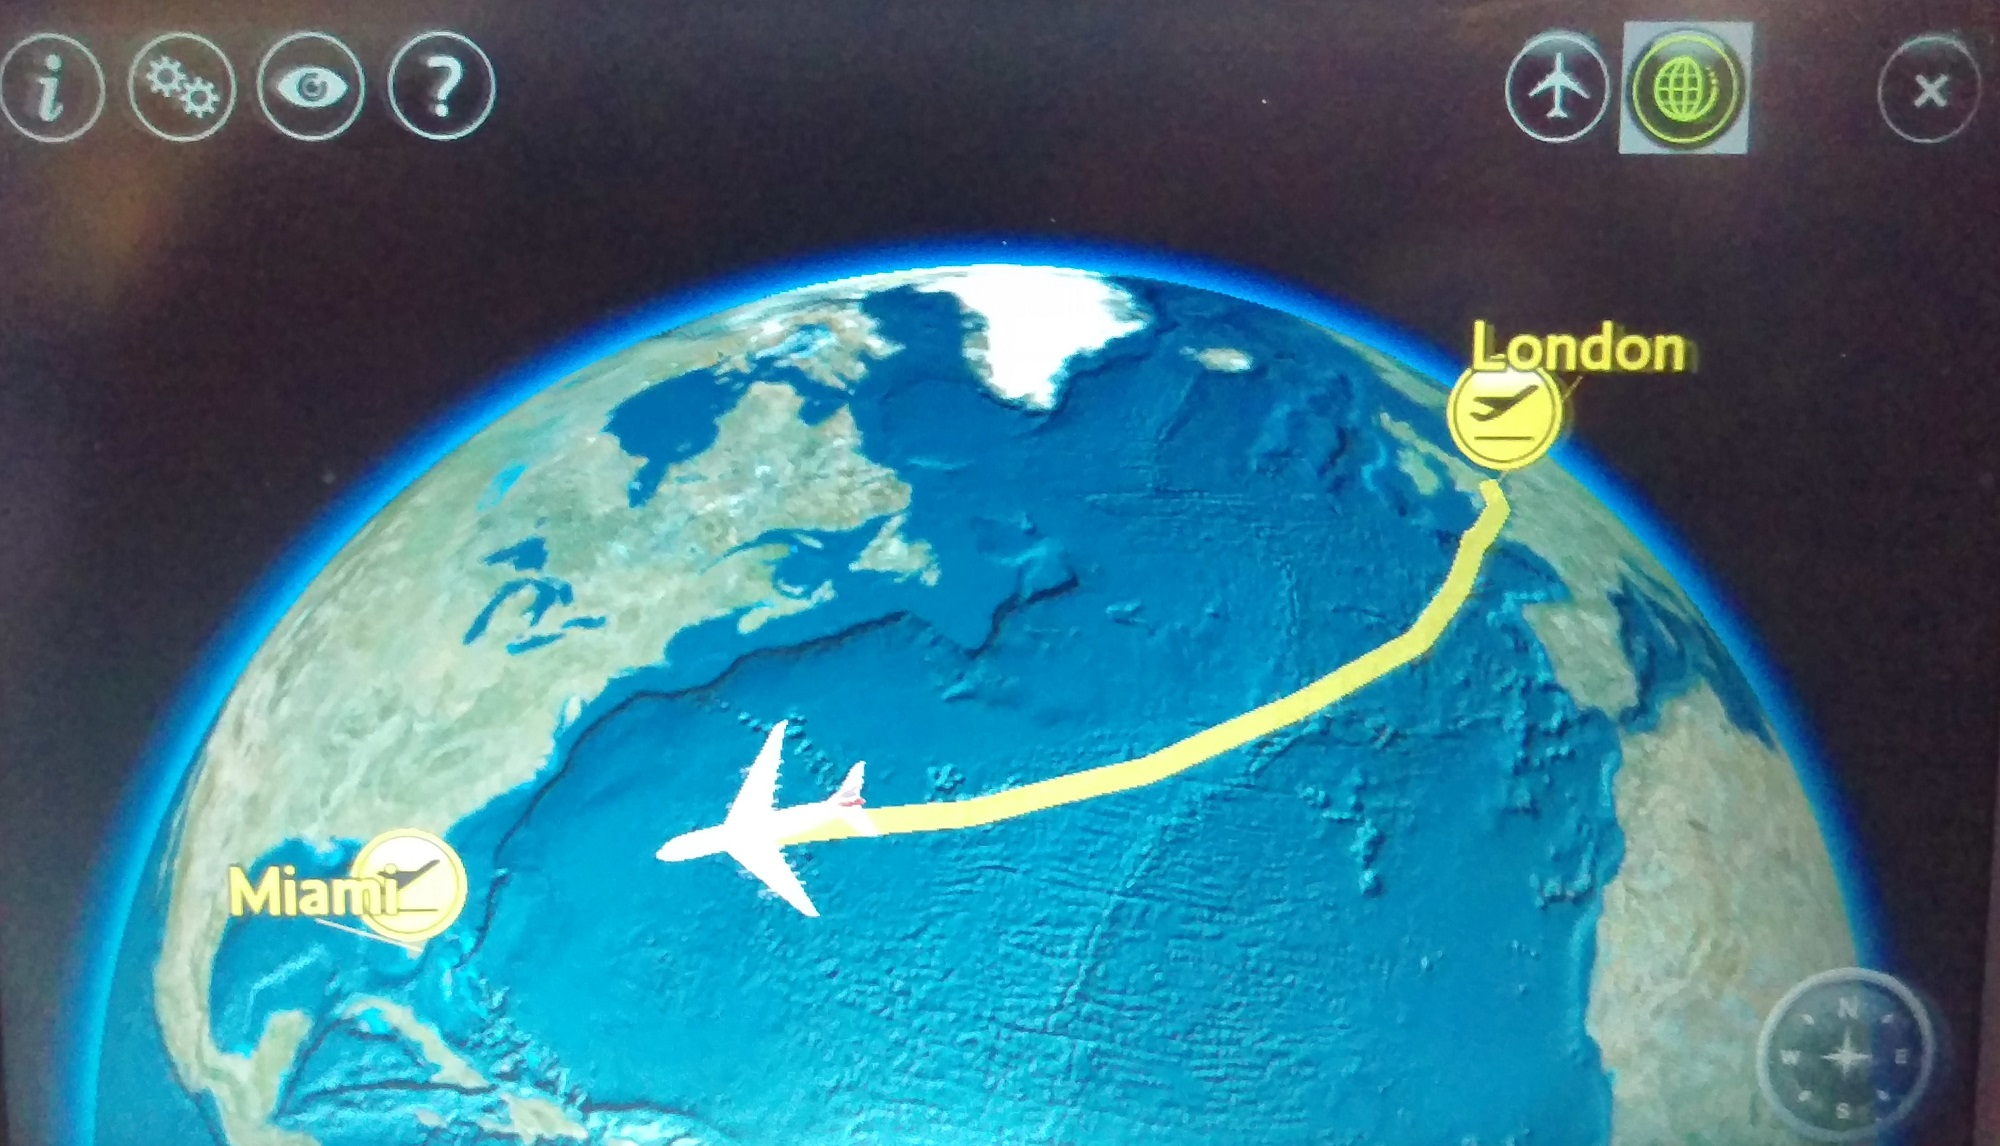 A screen shot of the travel map during my flight from London to Miami with British Airways. Here the plane is over the Atlantic, about 3/4 of the way to Miami.